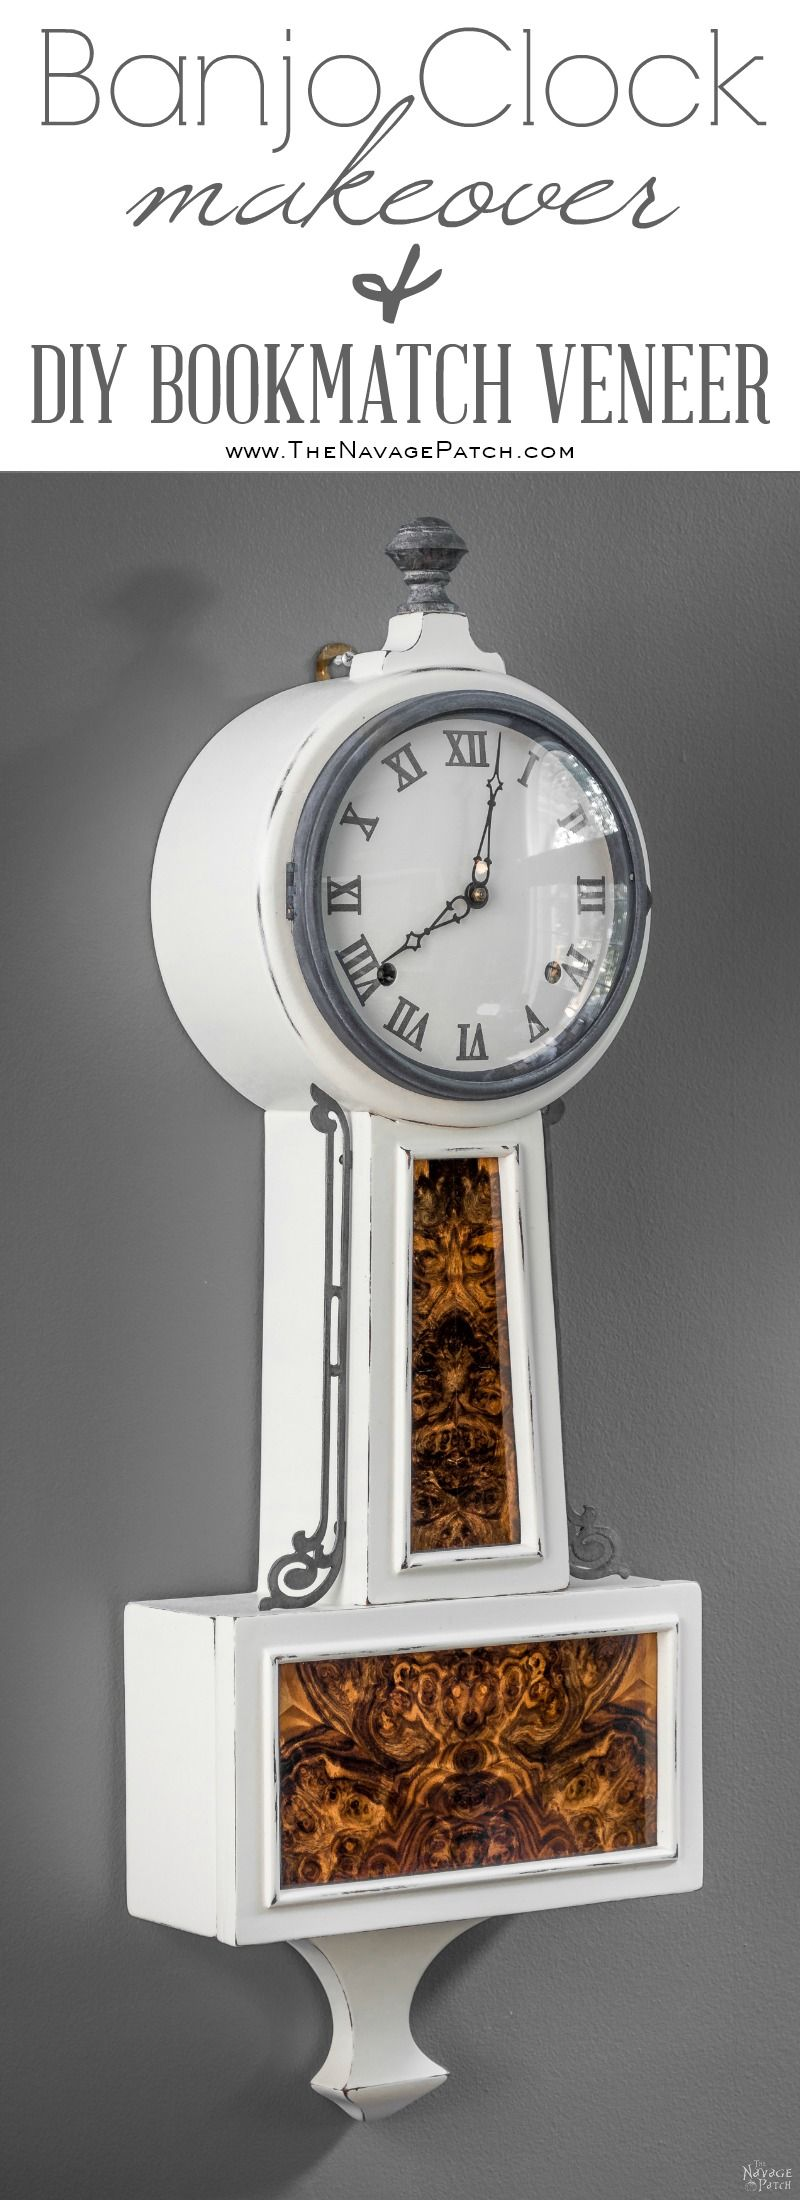 Banjo Clock Makeover | DIY furniture makeover with homemade chalk paint and exotic wood veneer | How to cover wood stains when painting with chalk paint | Homemade chalk paint recipe | Diy veneer tutorial | How to apply veneer | Woodworking | Refurbished banjo clock | Before & After | Victorian style furniture | Annie Sloan Old White color | TheNavagePatch.com